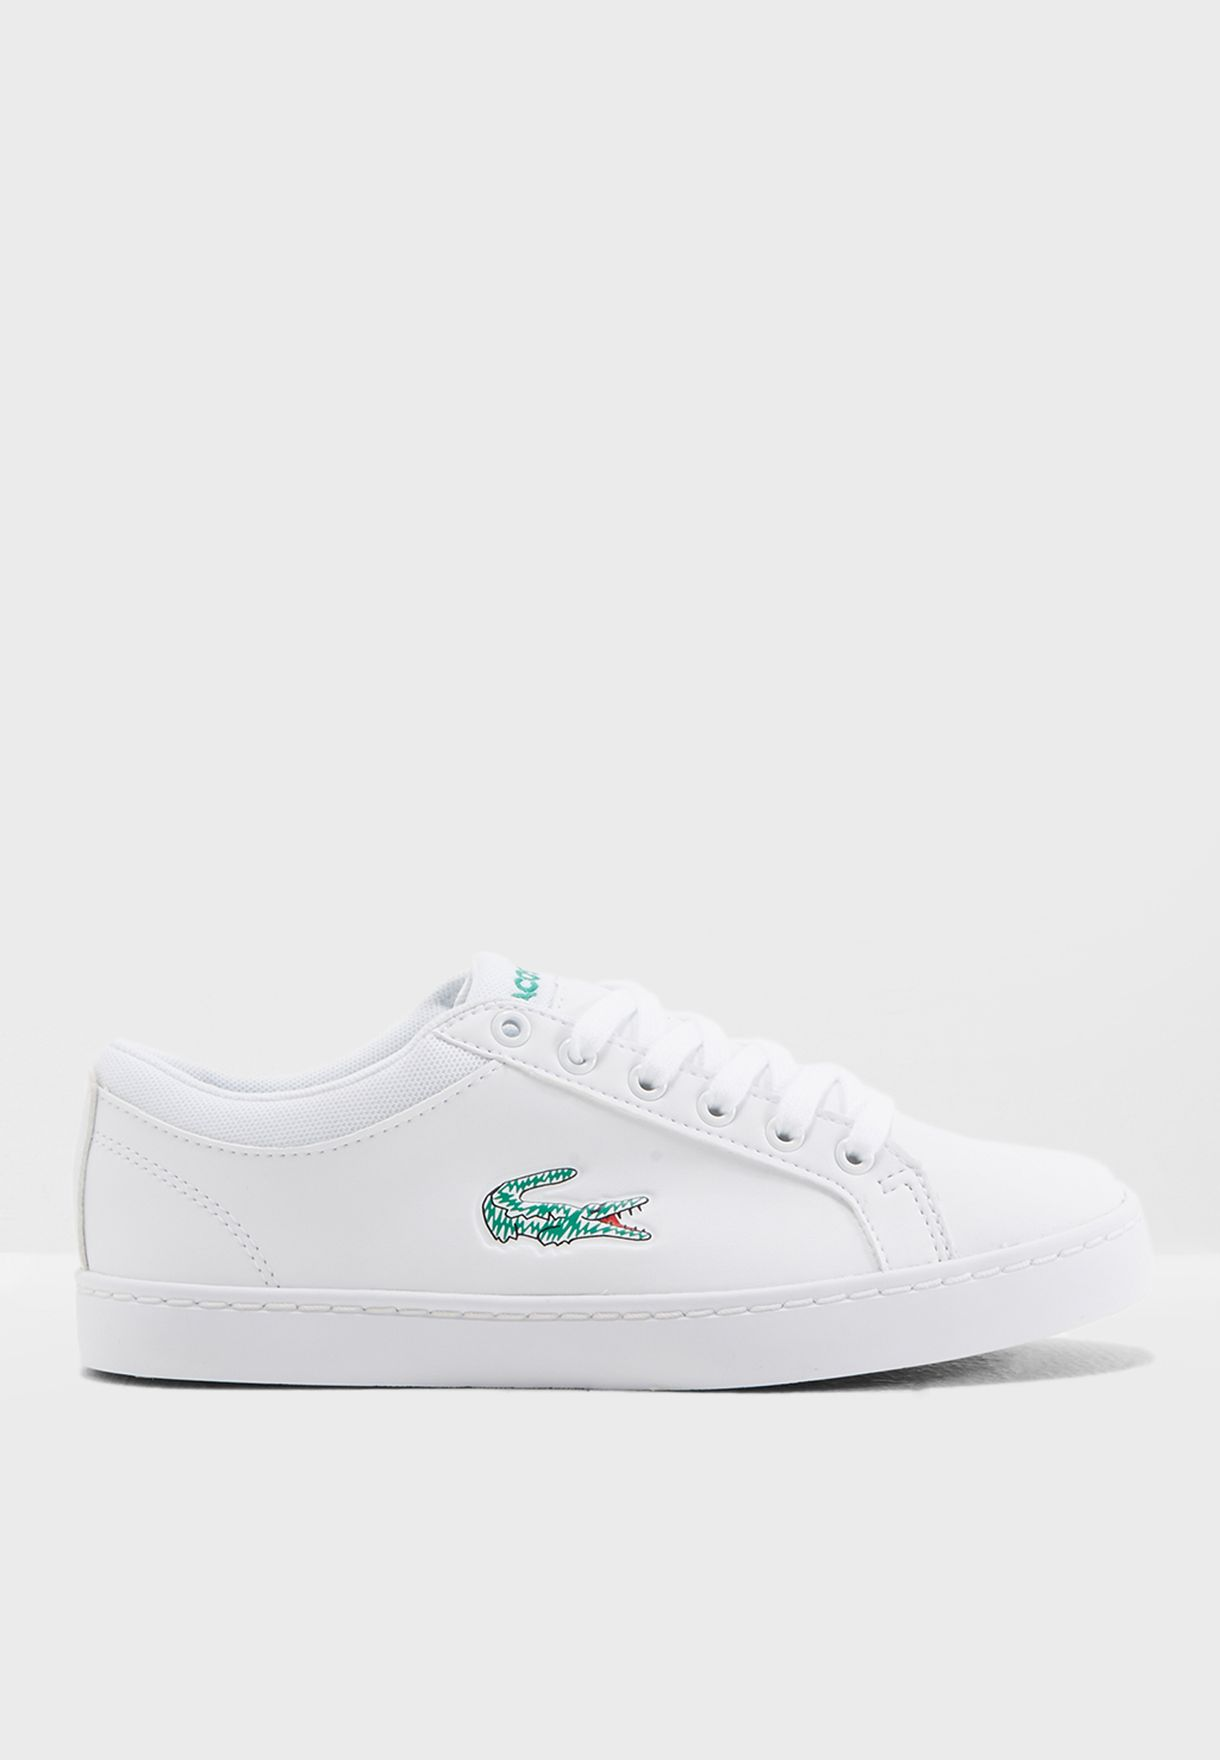 5caf666083d470 Shop Lacoste white Youth Straightset Lace 118 1 Sneaker 35CAJ0024 ...